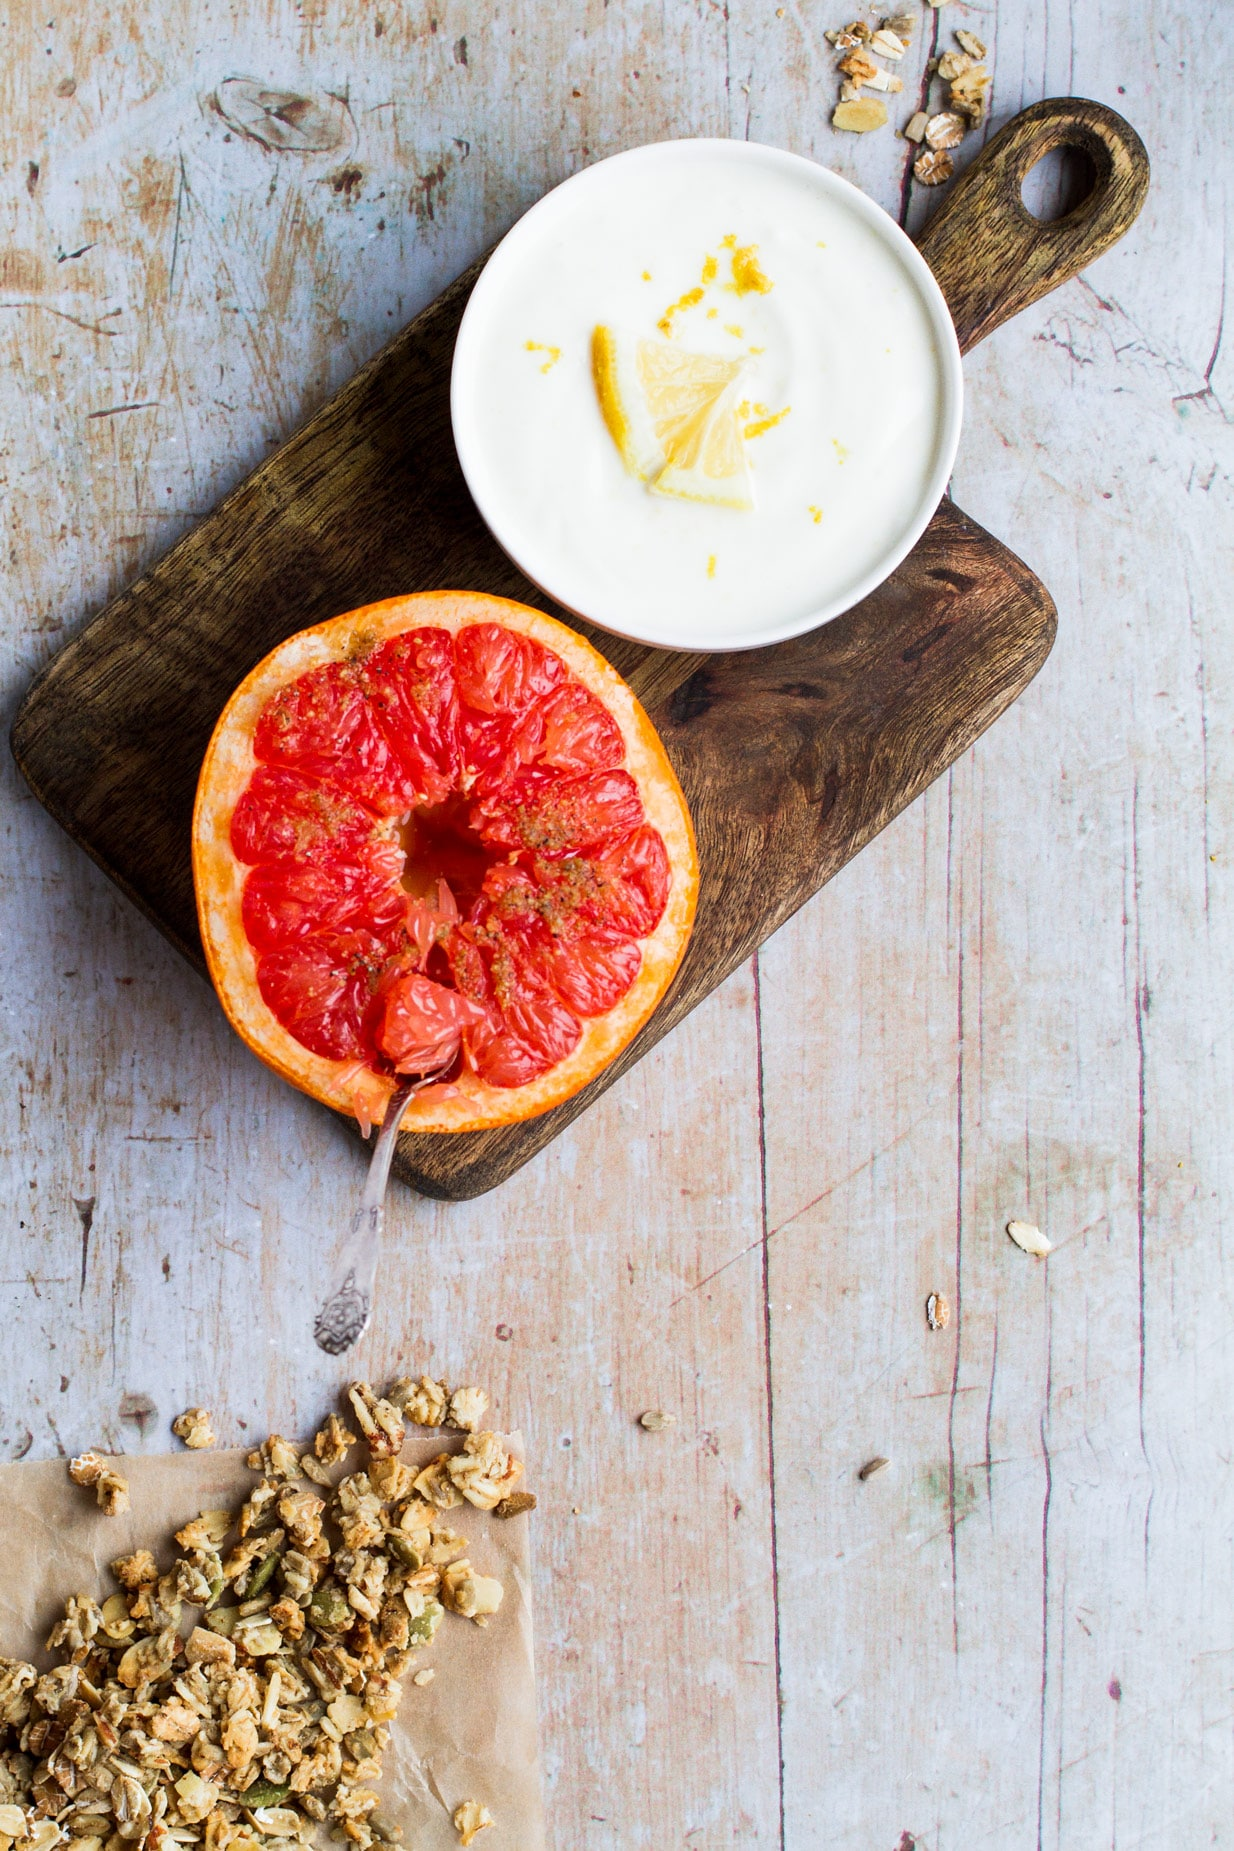 Bird's eye view of a halved baked grapefruit on a dark wooden tray with a white bowl of yoghurt with lemon garnish. A sprinkle of granola on the light wooden table.